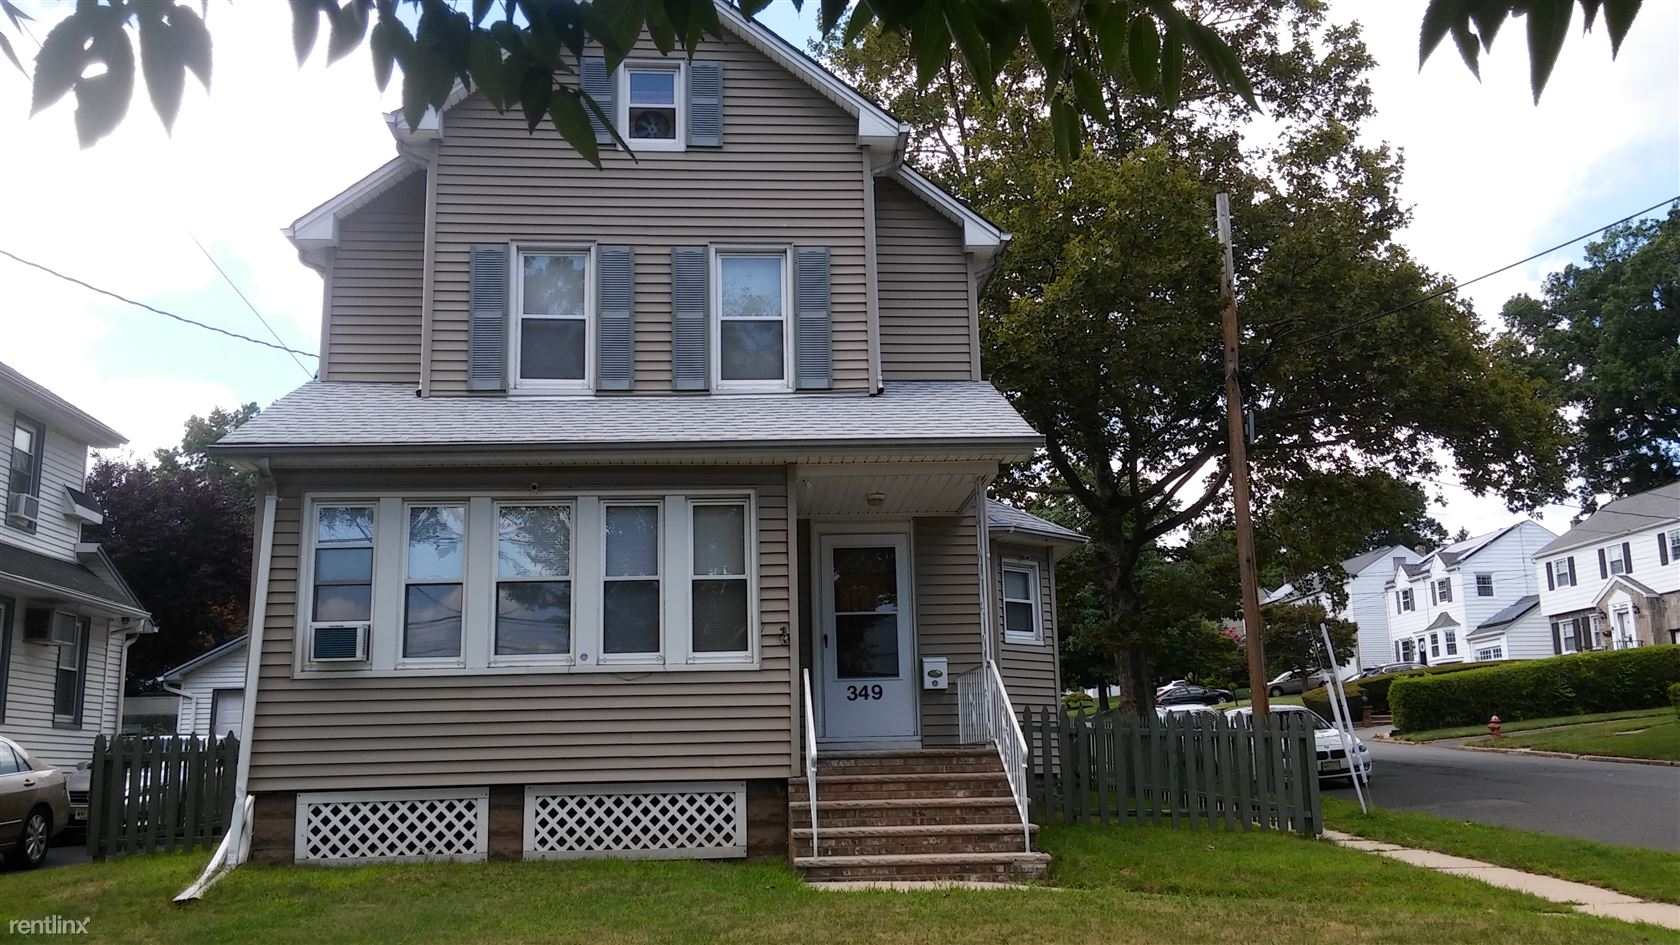 House for Rent in Nutley